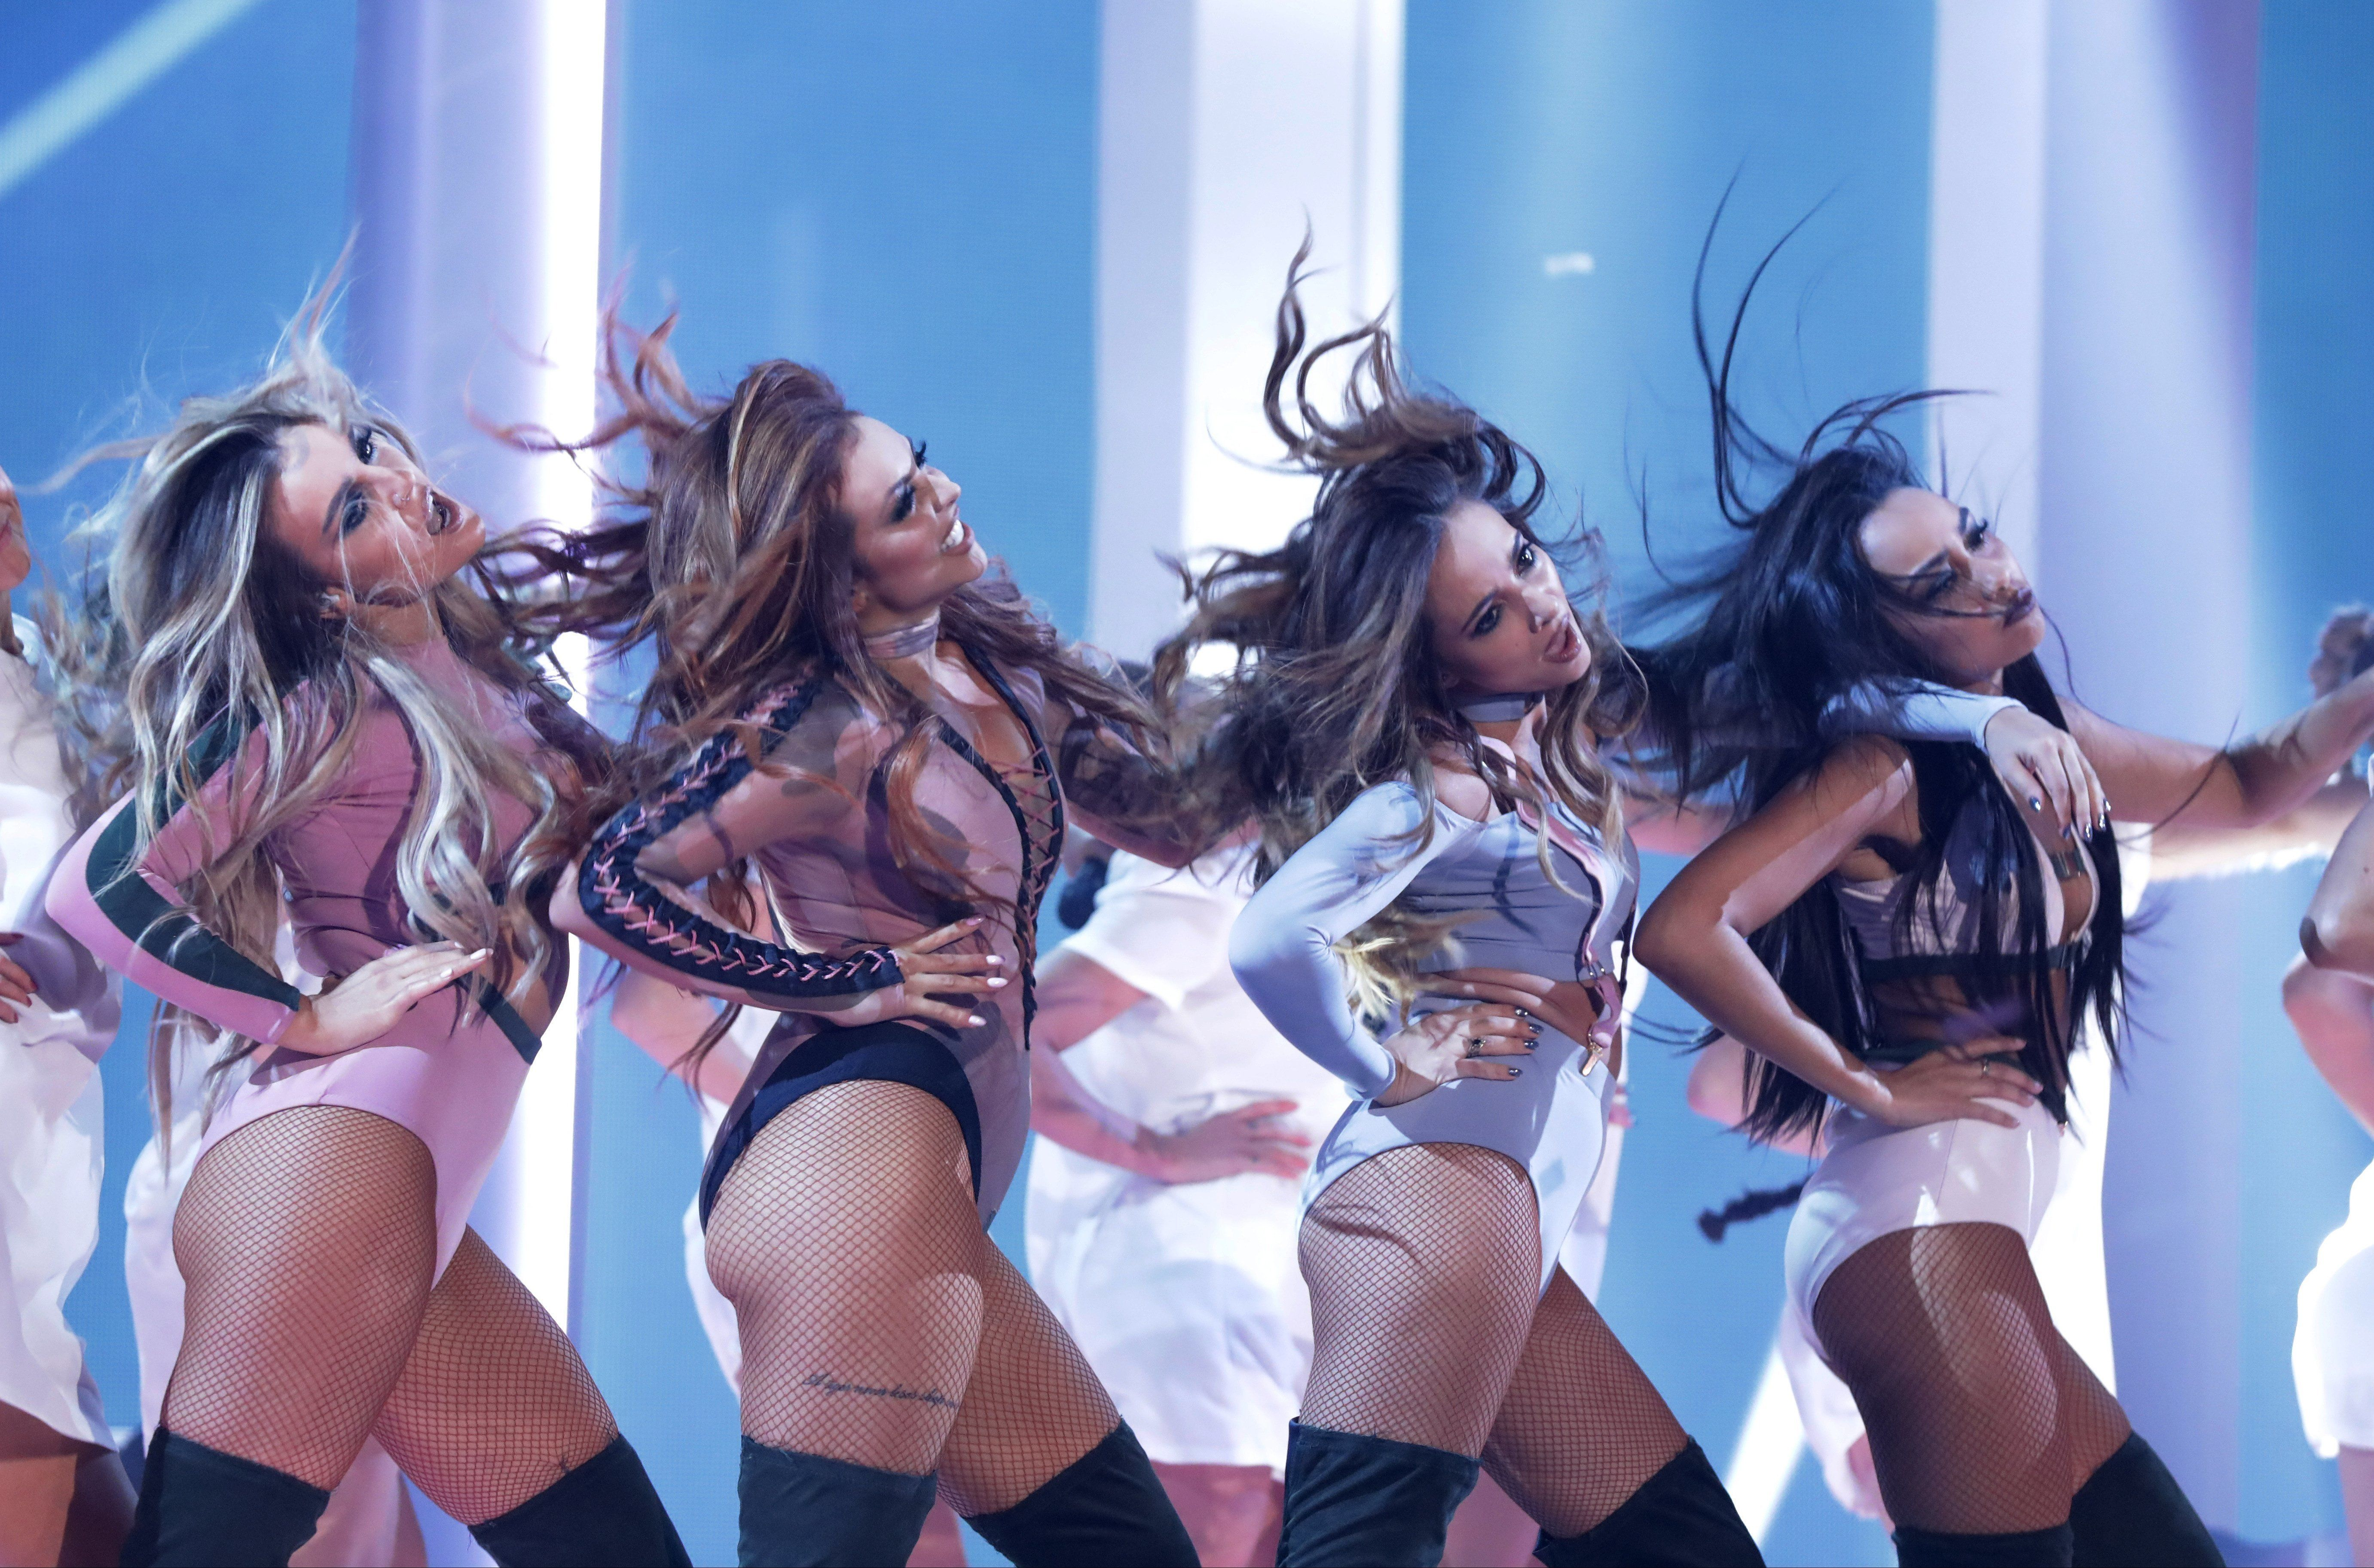 The group sported revealing outfits for their performance of